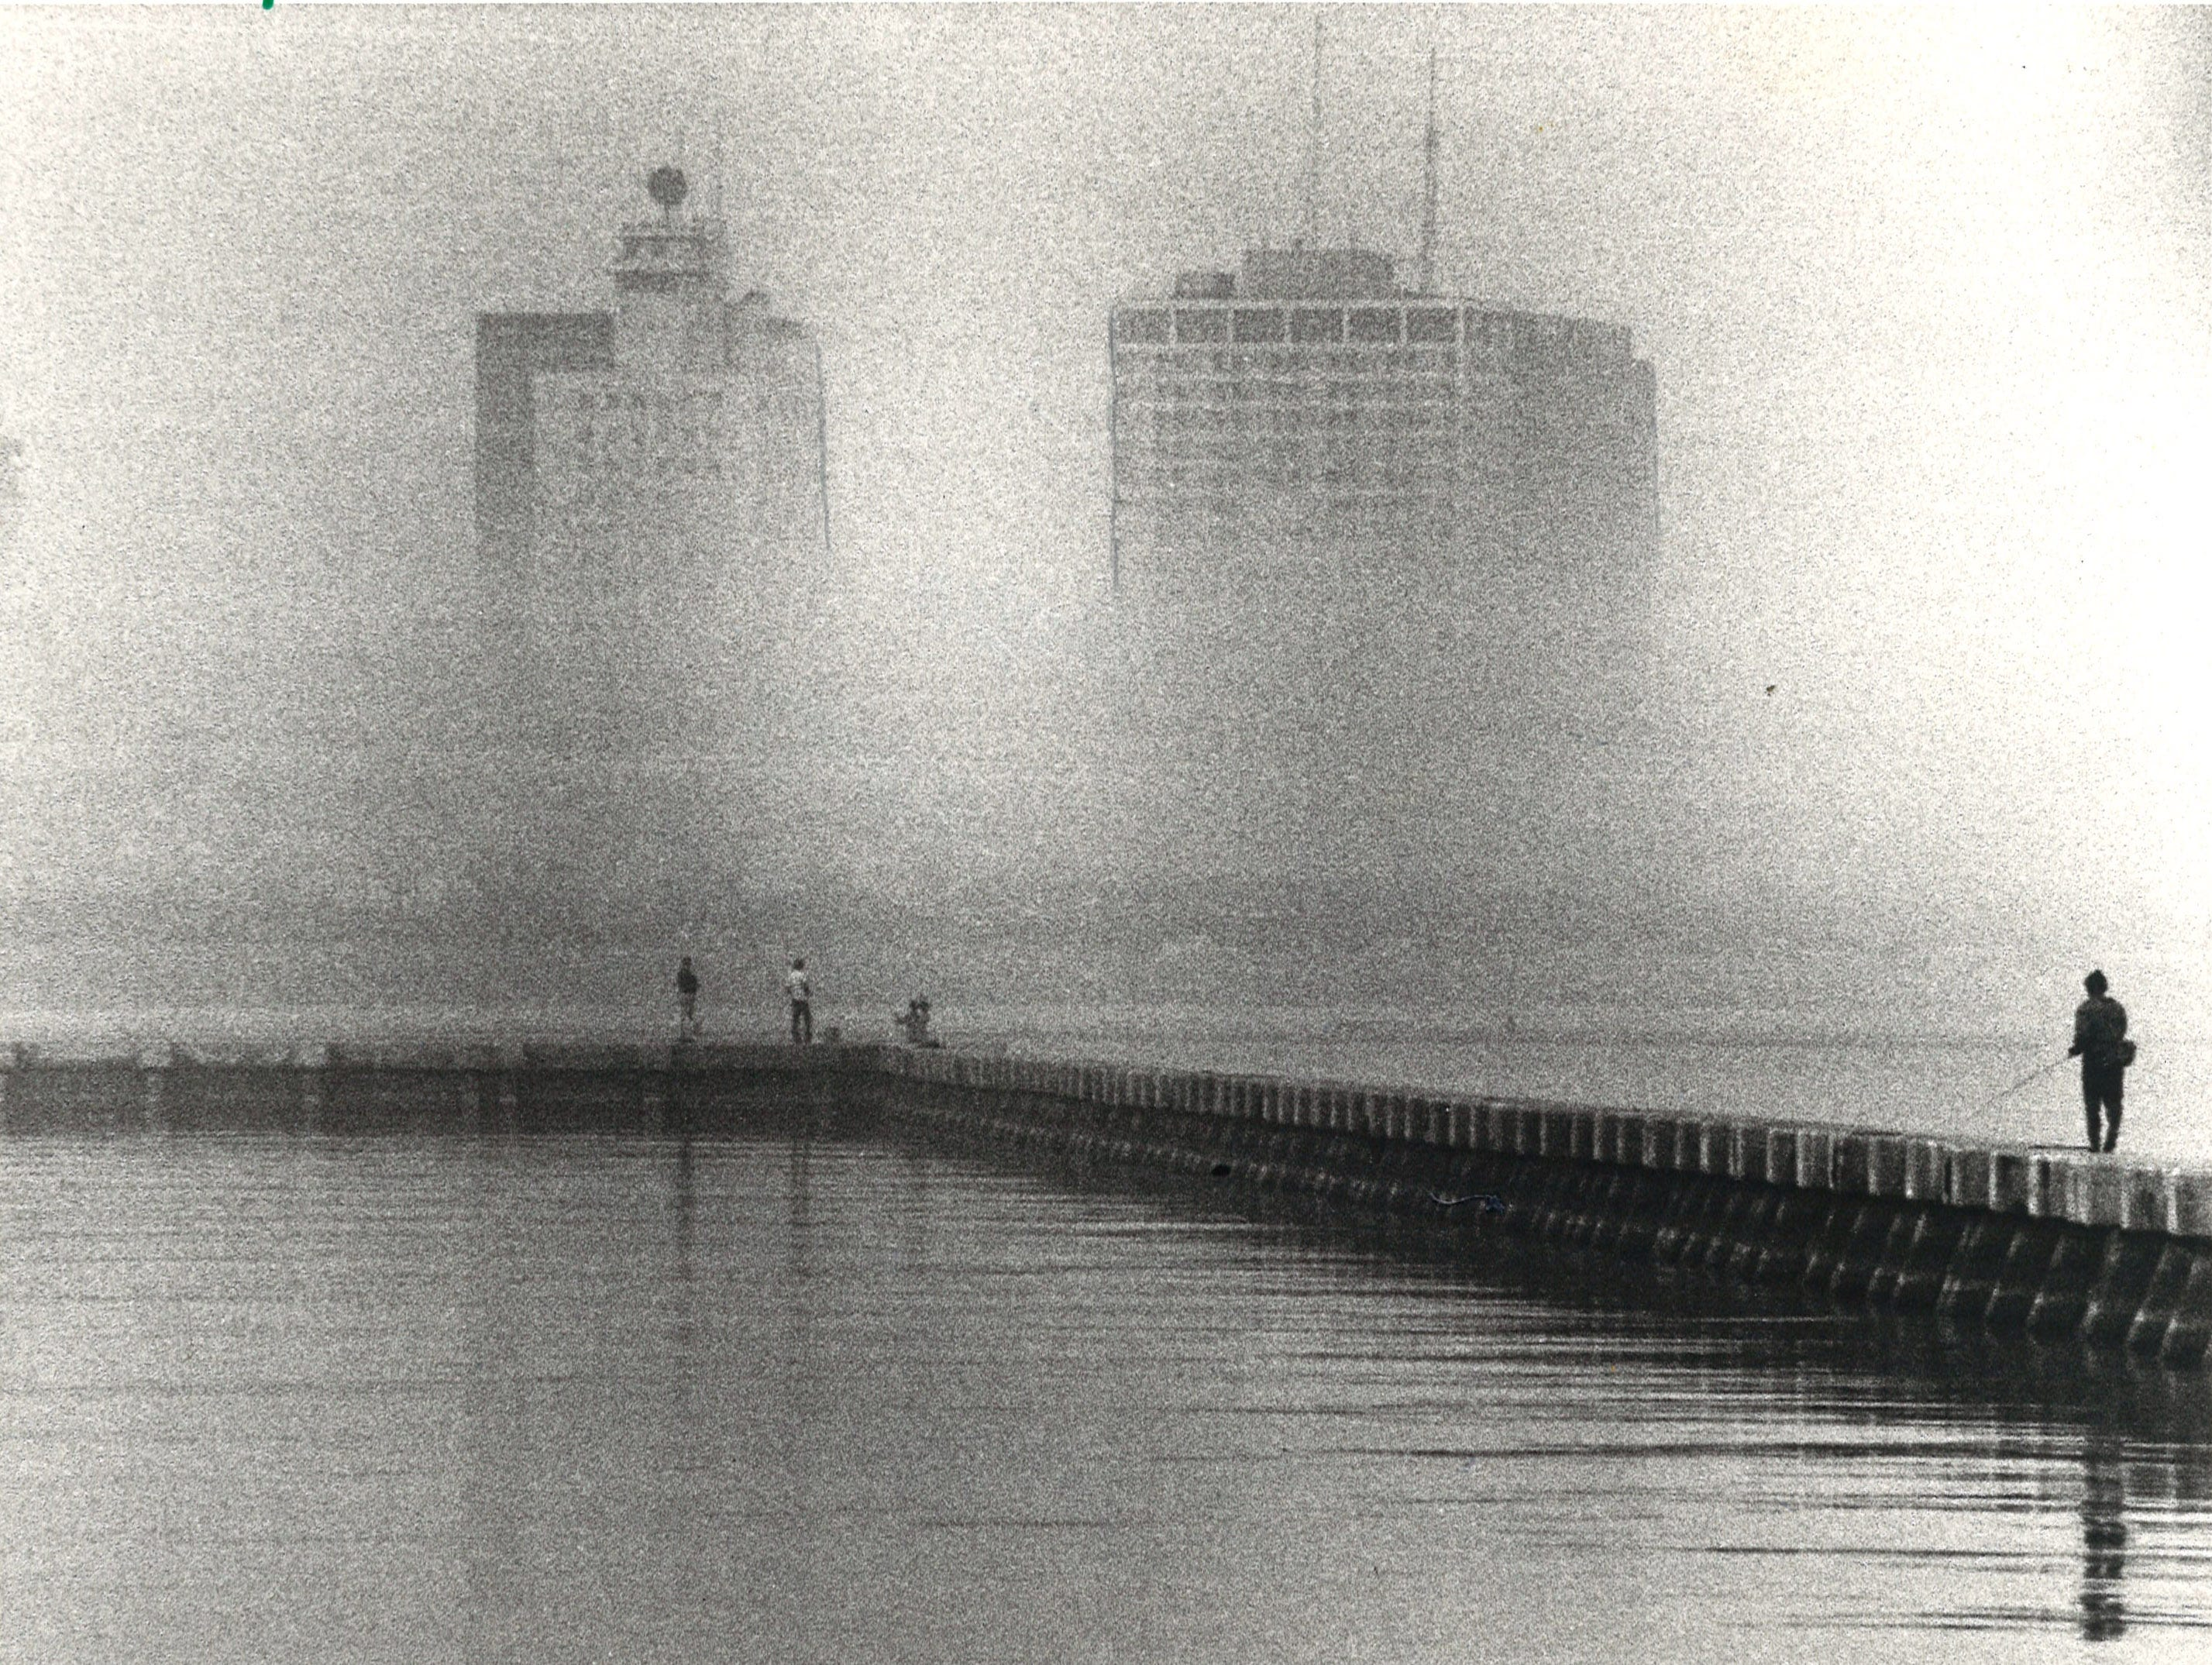 Fisherman are shrouded in fog in front of Spohn Hospital in Corpus Christi on Dec. 18, 1978.